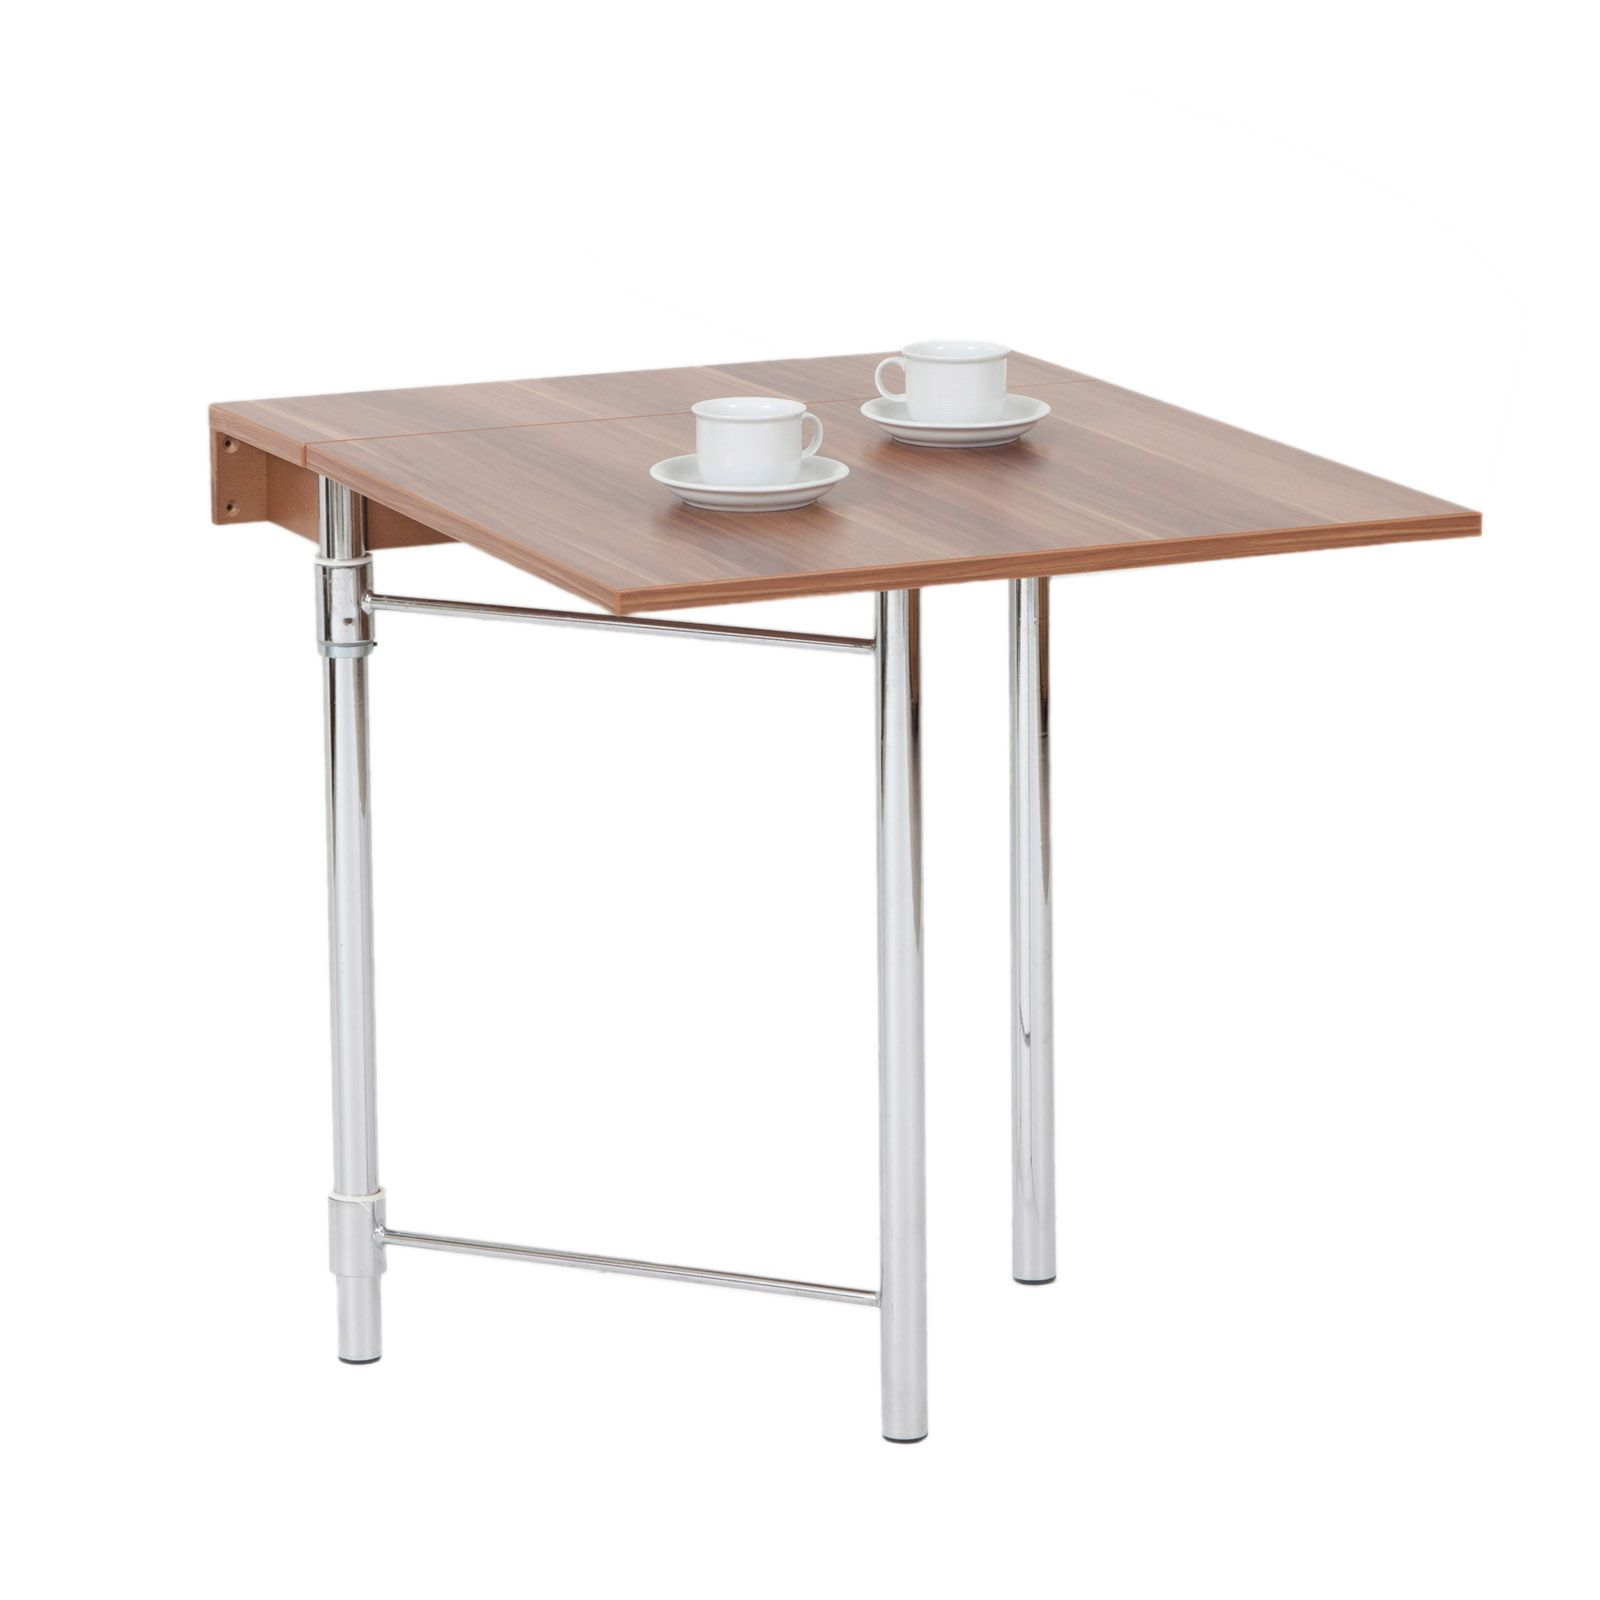 Cool hoffmann sumatra table pliante murale noyer fonc with for Table pliante avec rallonge